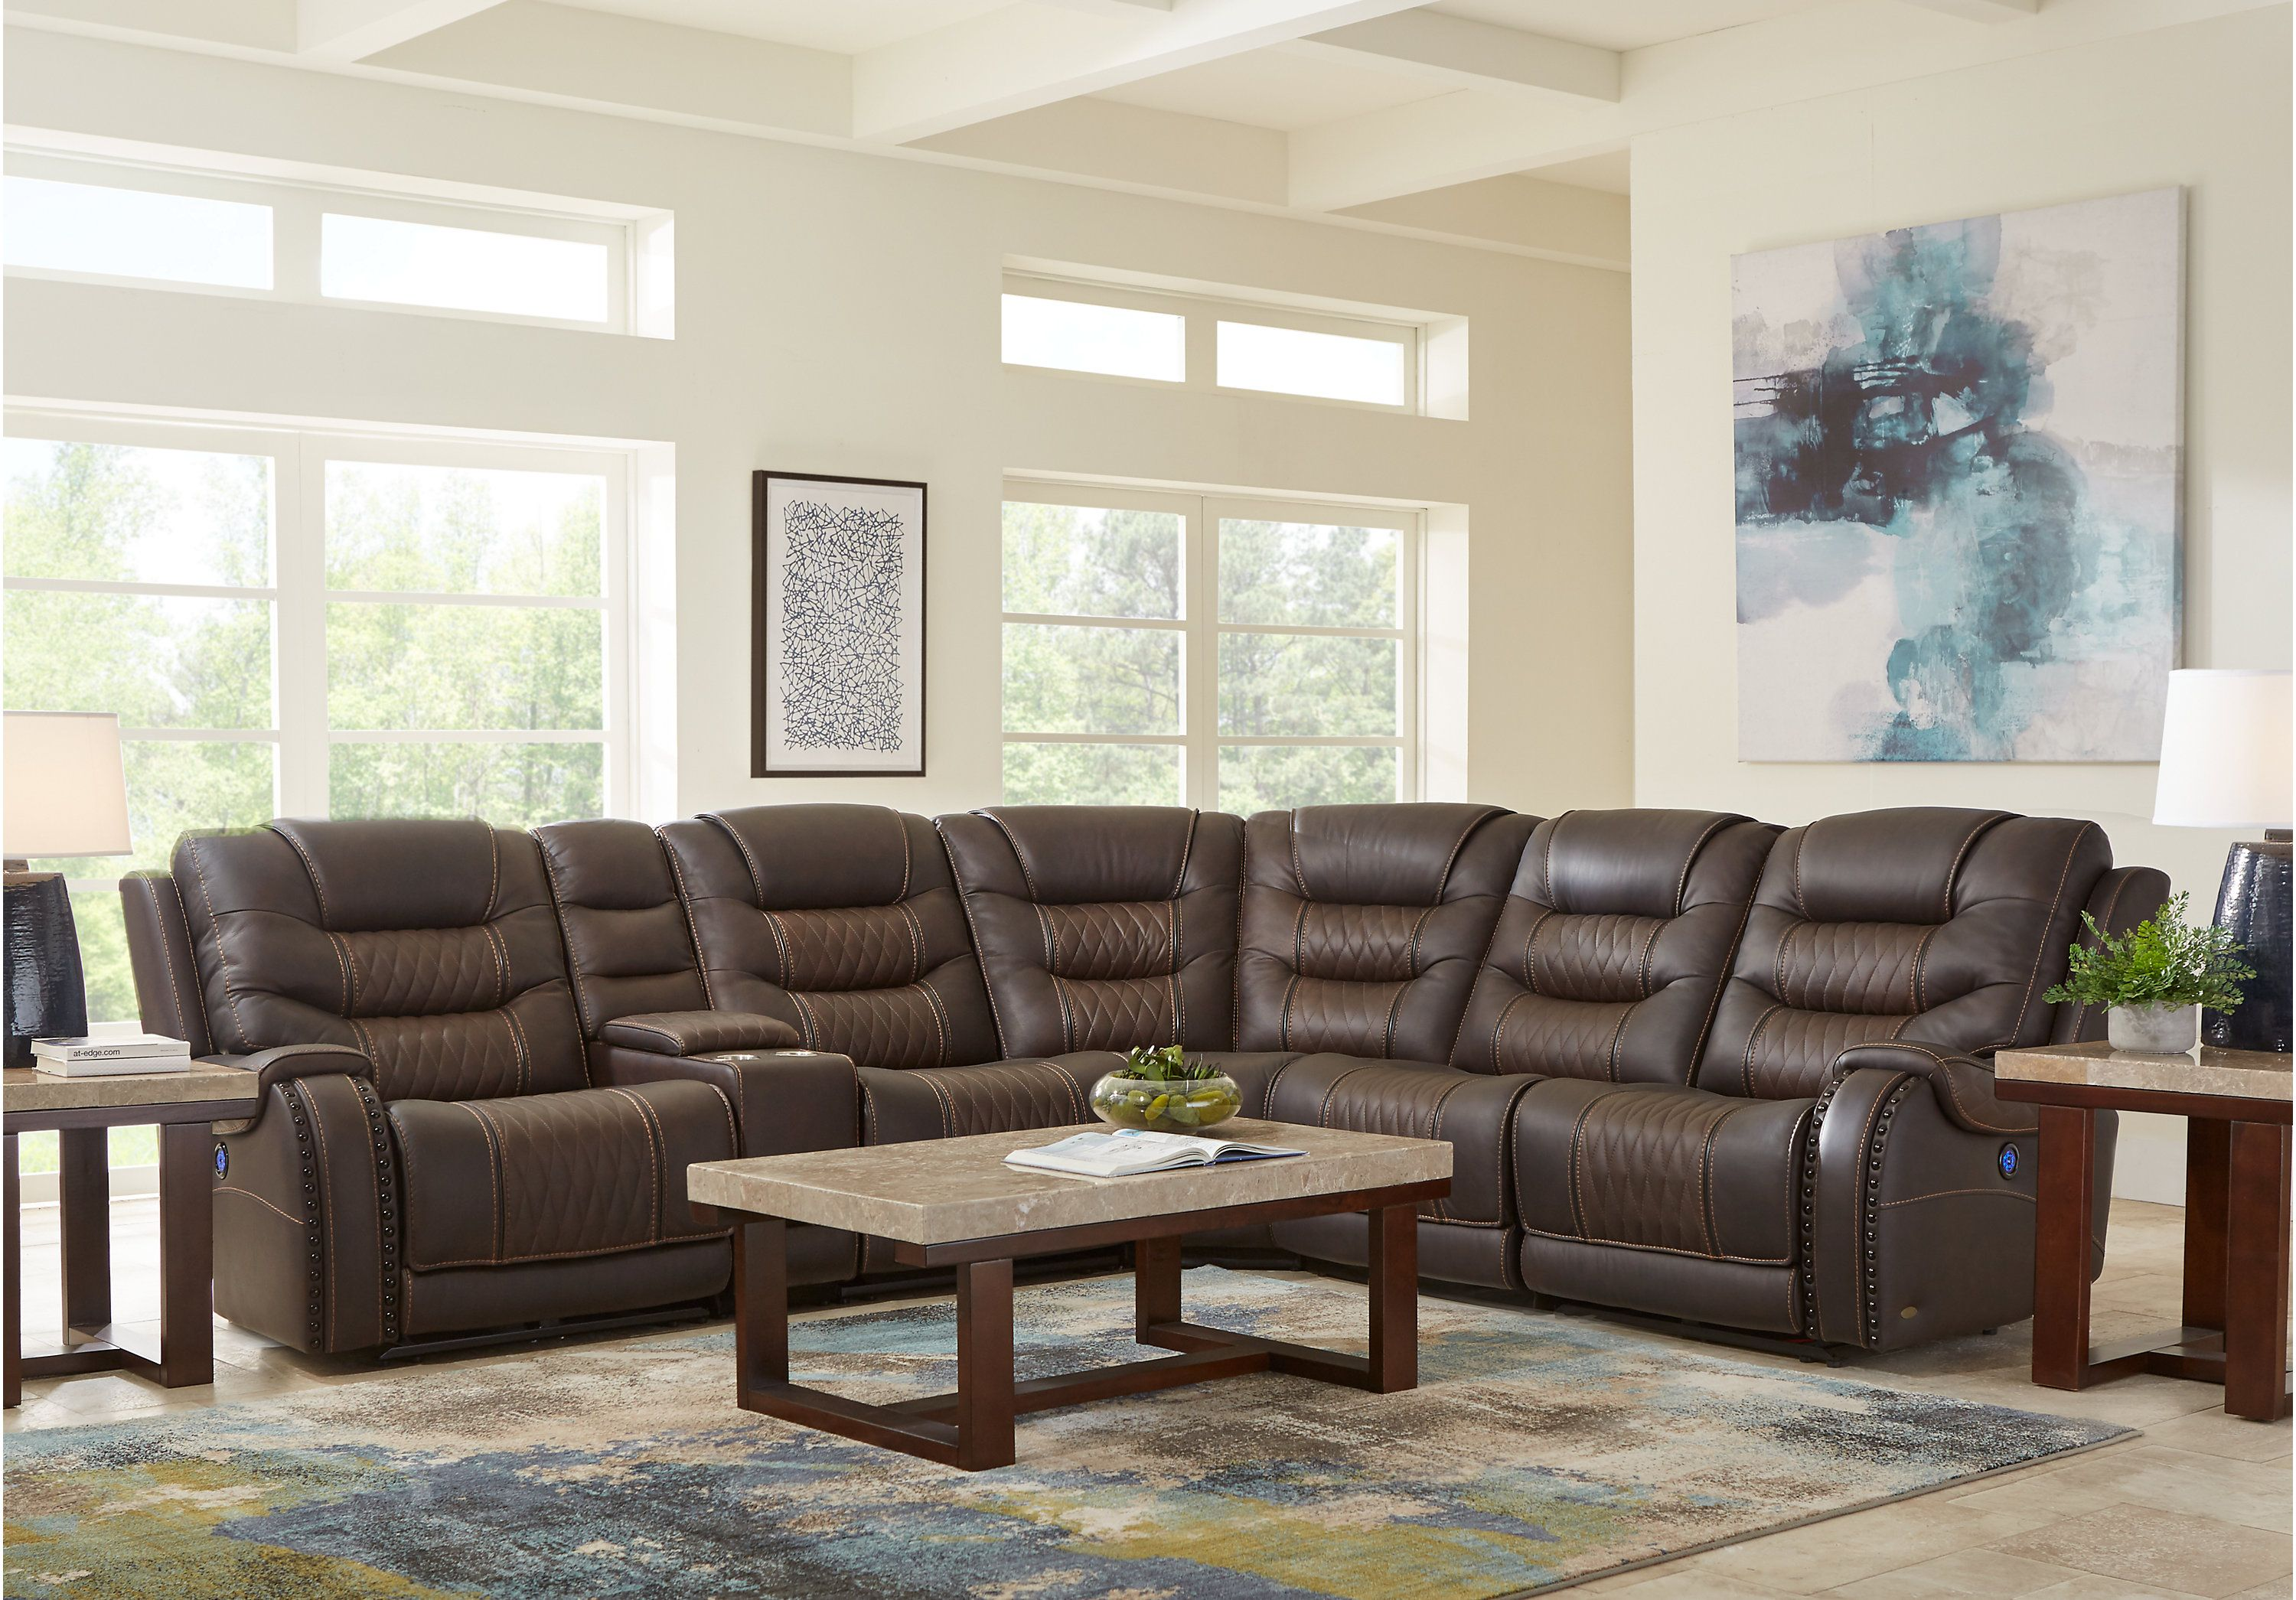 Barlow White Leather Sofa And Loveseat Set Eric Church Highway To Home Headliner Brown Leather 6 Pc Dual